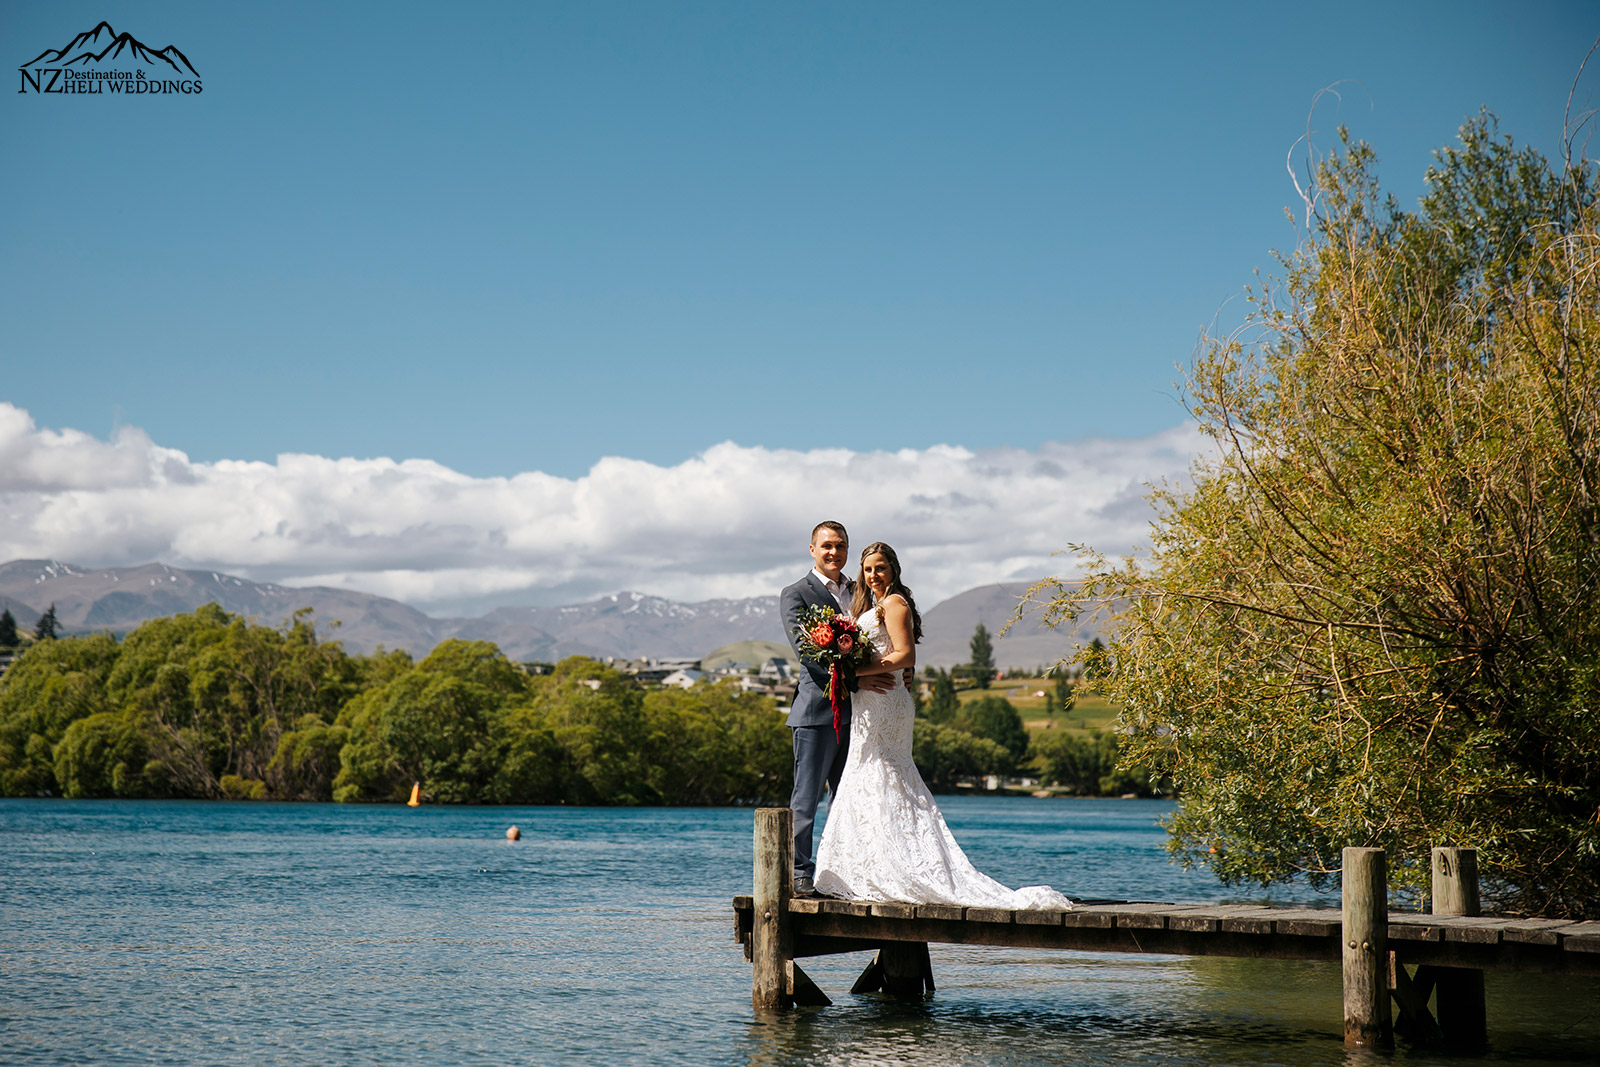 Queenstown Elopement wedding Hilton